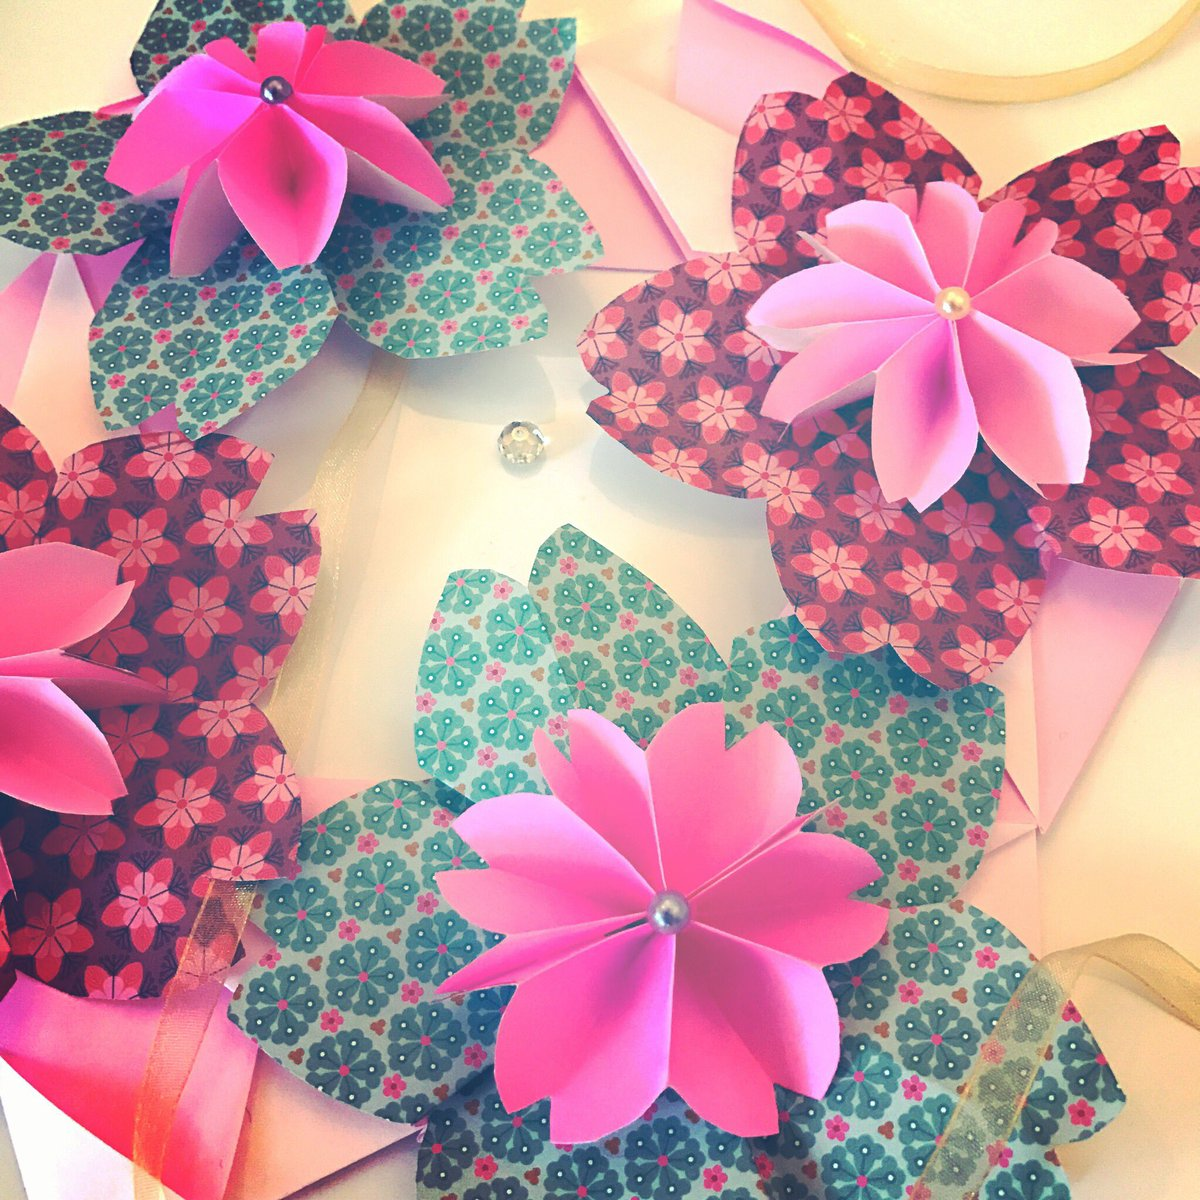 Join us on Wed 26 Jul for the Introduction to #Origami workshop and take a beautiful #handmade #card home.Registration closes on Tue 25th. <br>http://pic.twitter.com/ouktUw0JPY